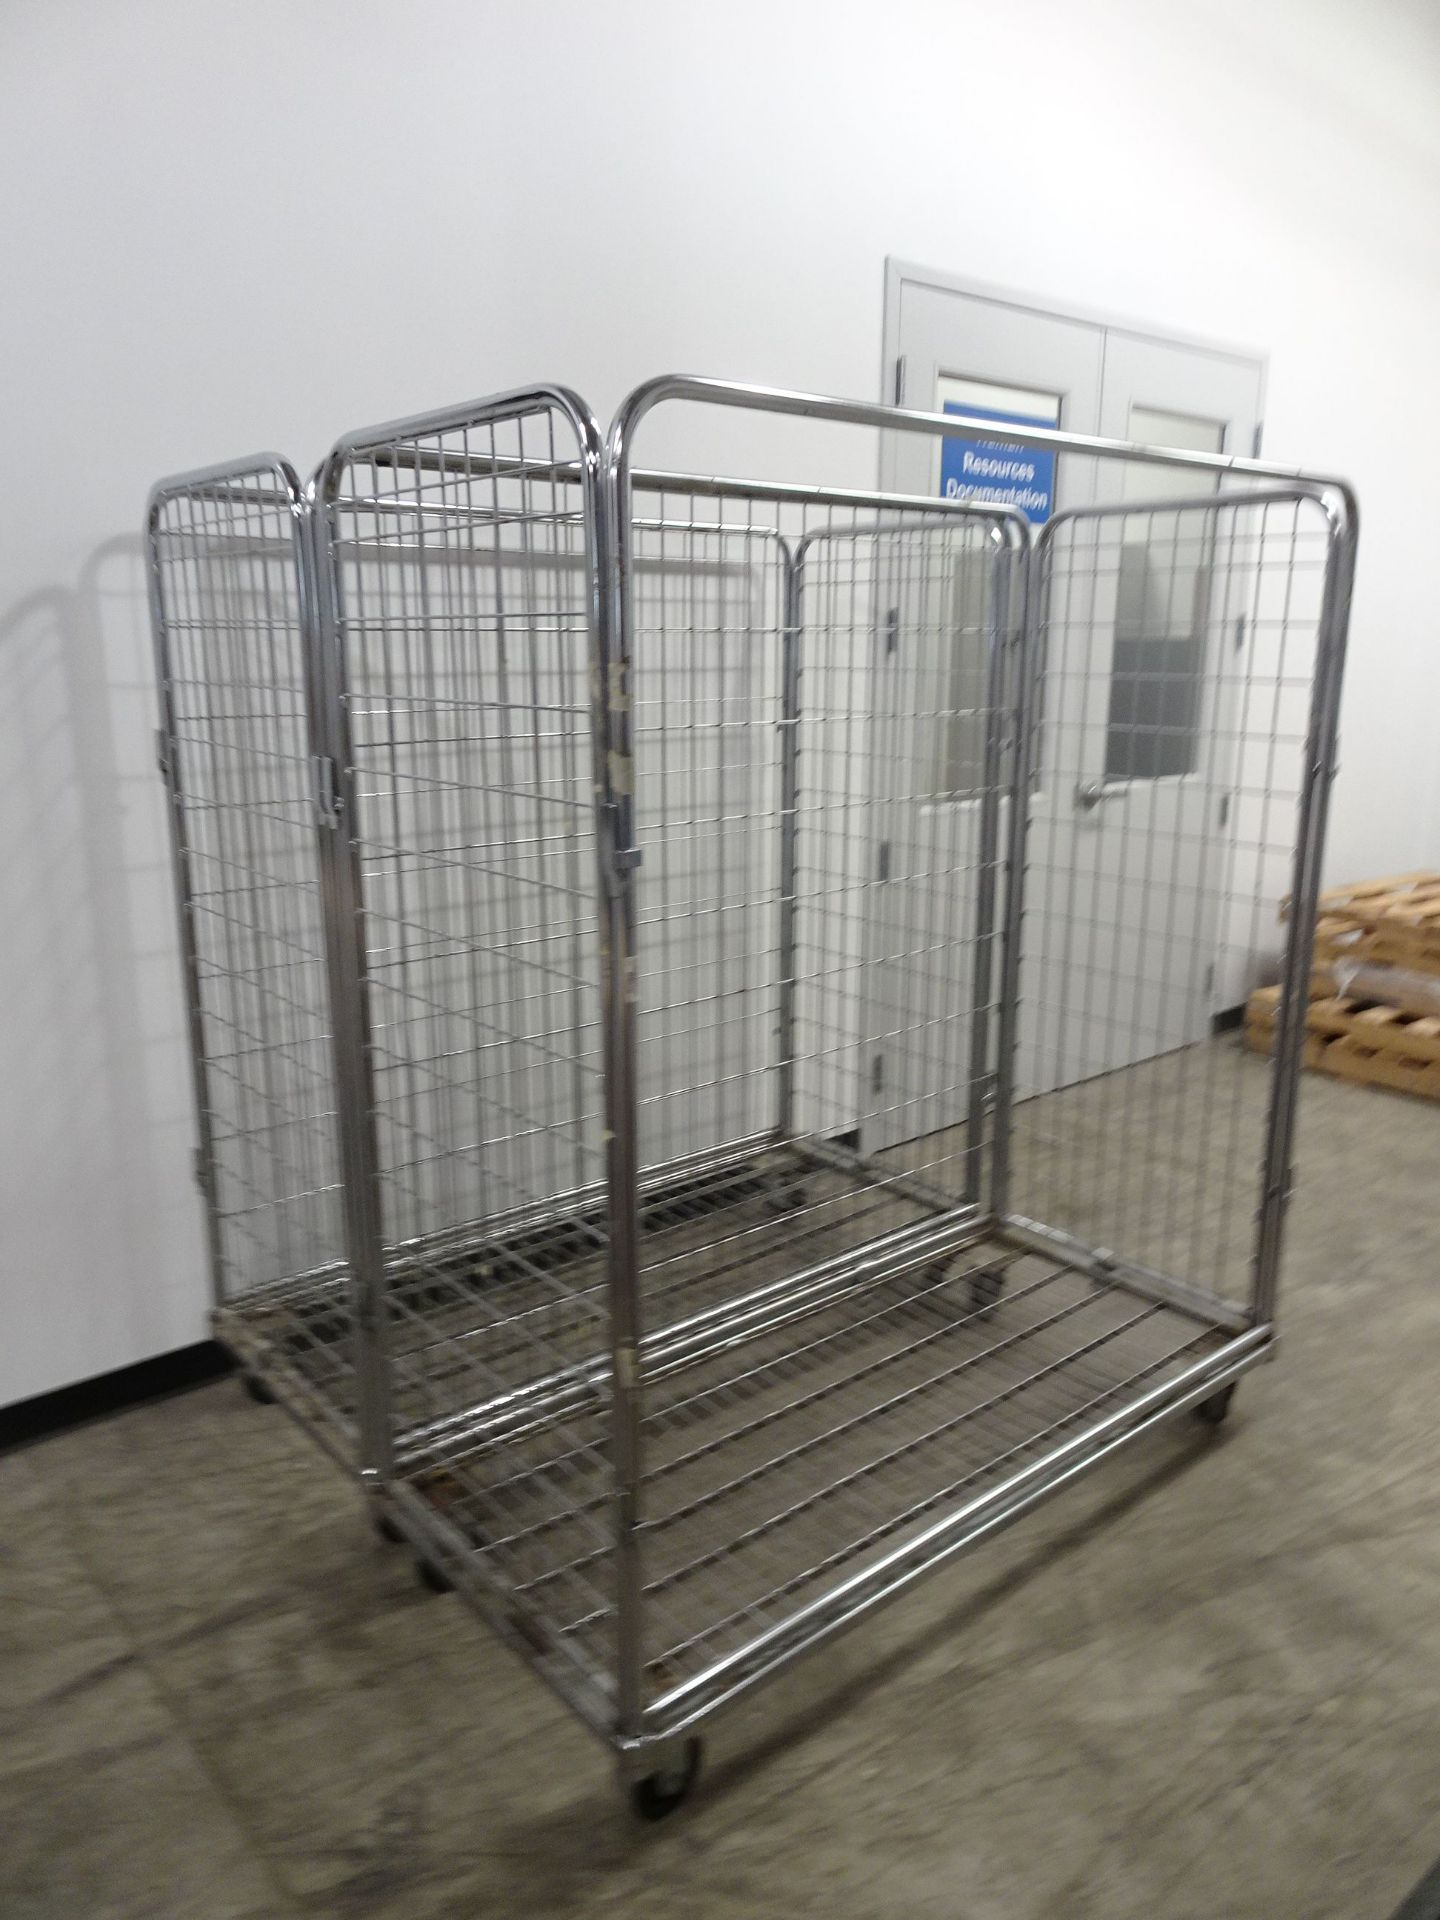 """Lot 17 - (1) 60"""" x 24""""Enclosed Stainless Steel Wire Cart, (4) 60"""" x 24"""" 3 Sided Wire Carts"""